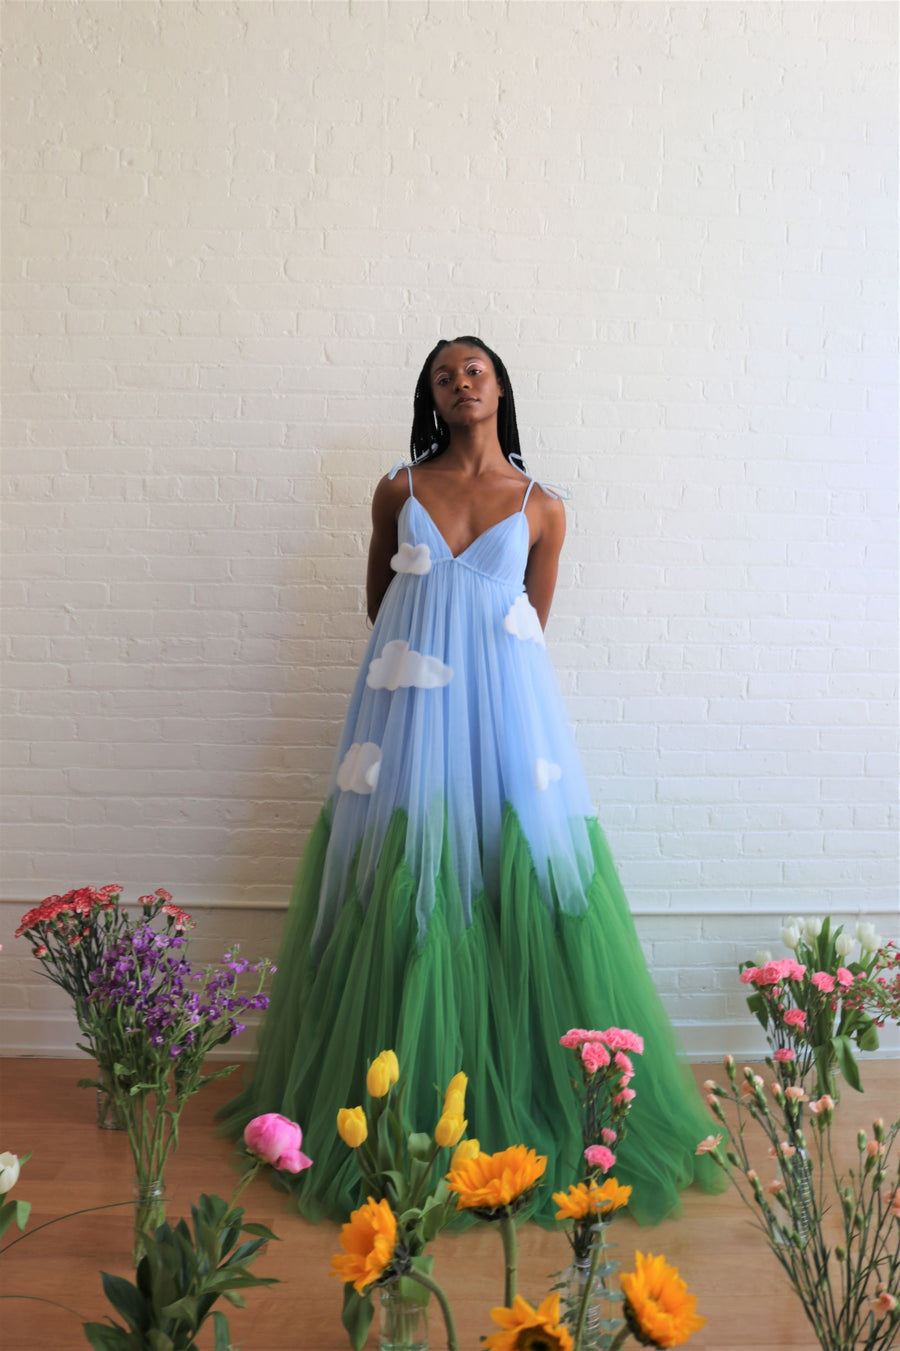 Glass Slipper Gown